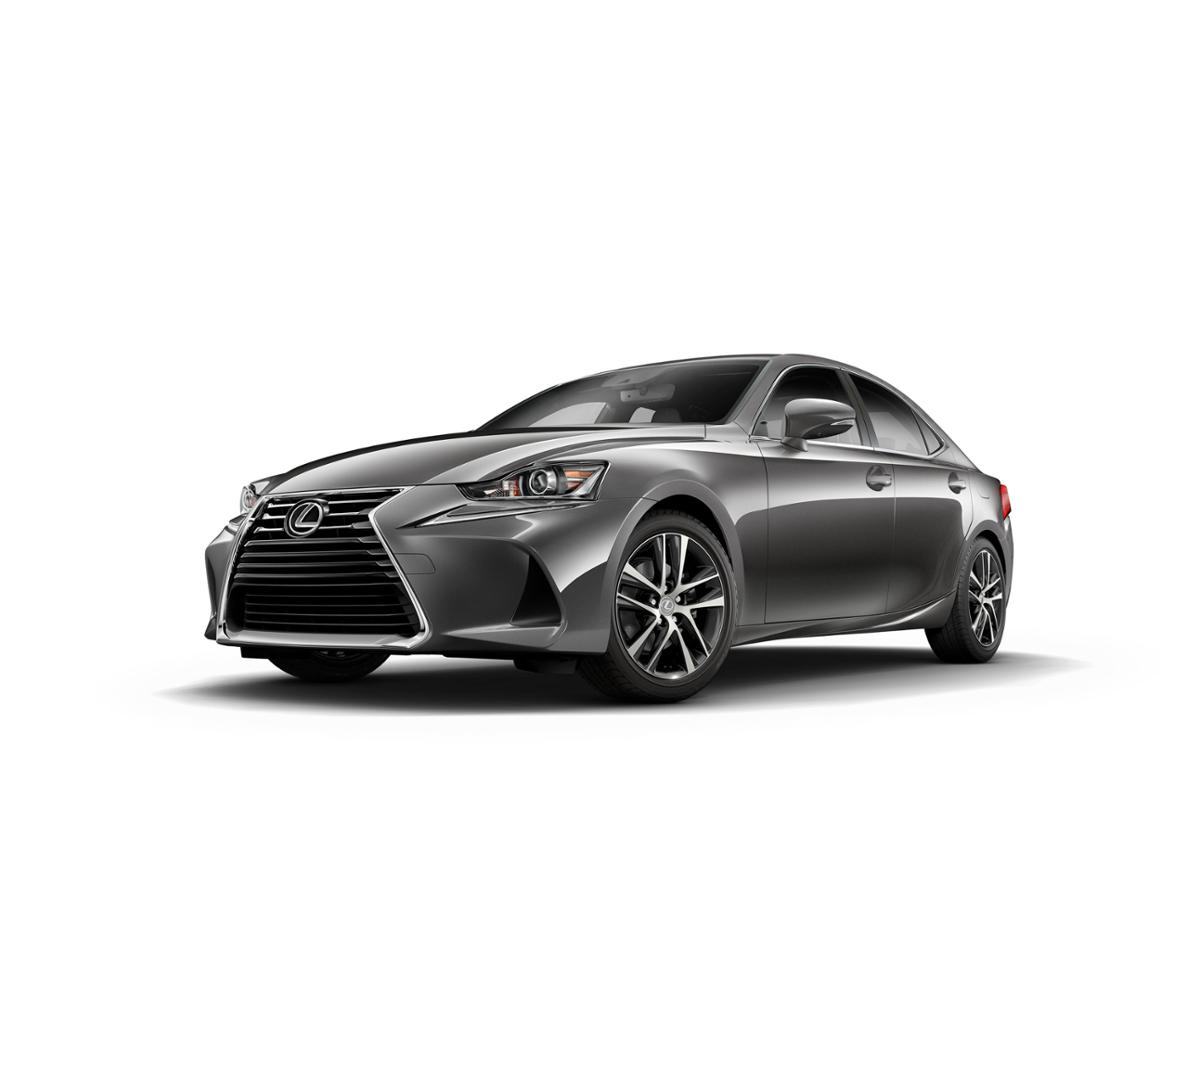 2018 Lexus IS 300 Vehicle Photo in Houston, TX 77546